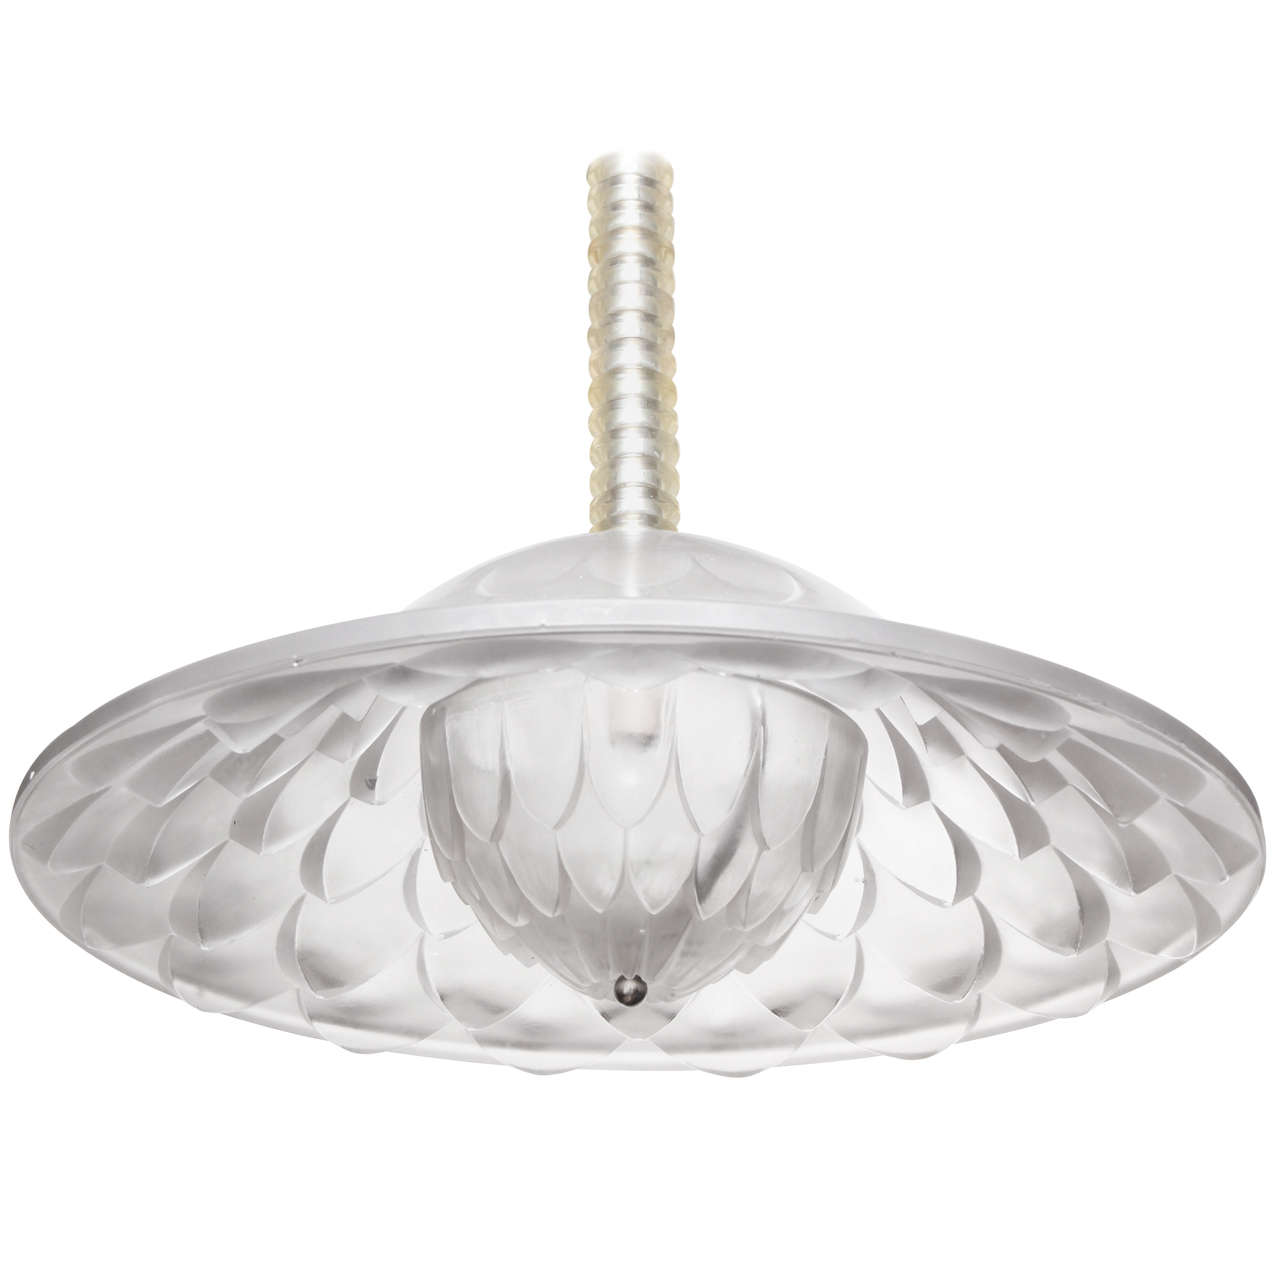 "R. Lalique ""Verone"" Chandelier For Sale"